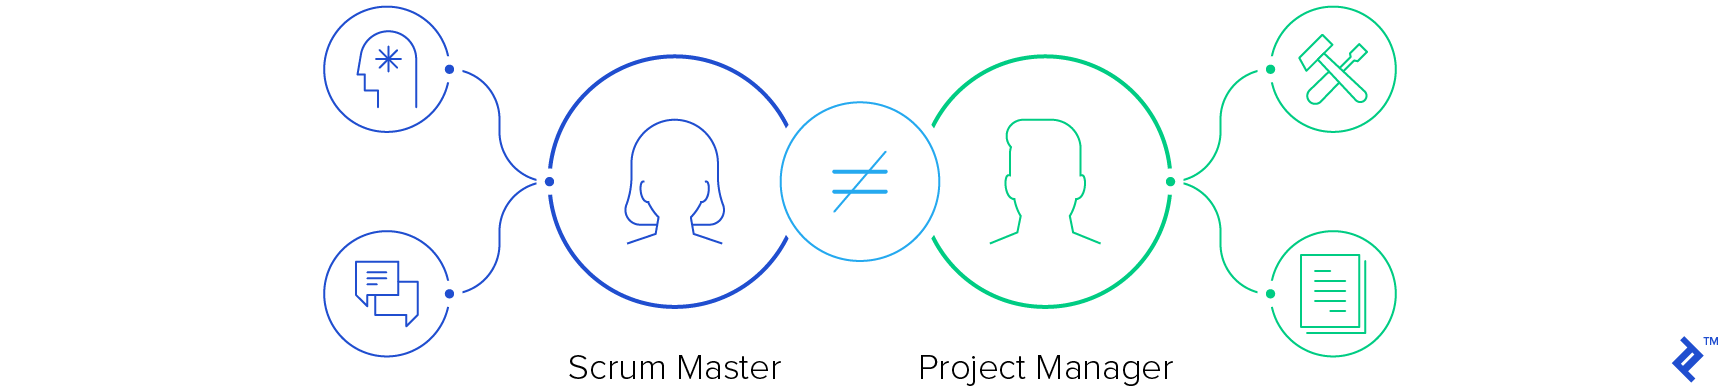 Scrum Master is not equal to project manager